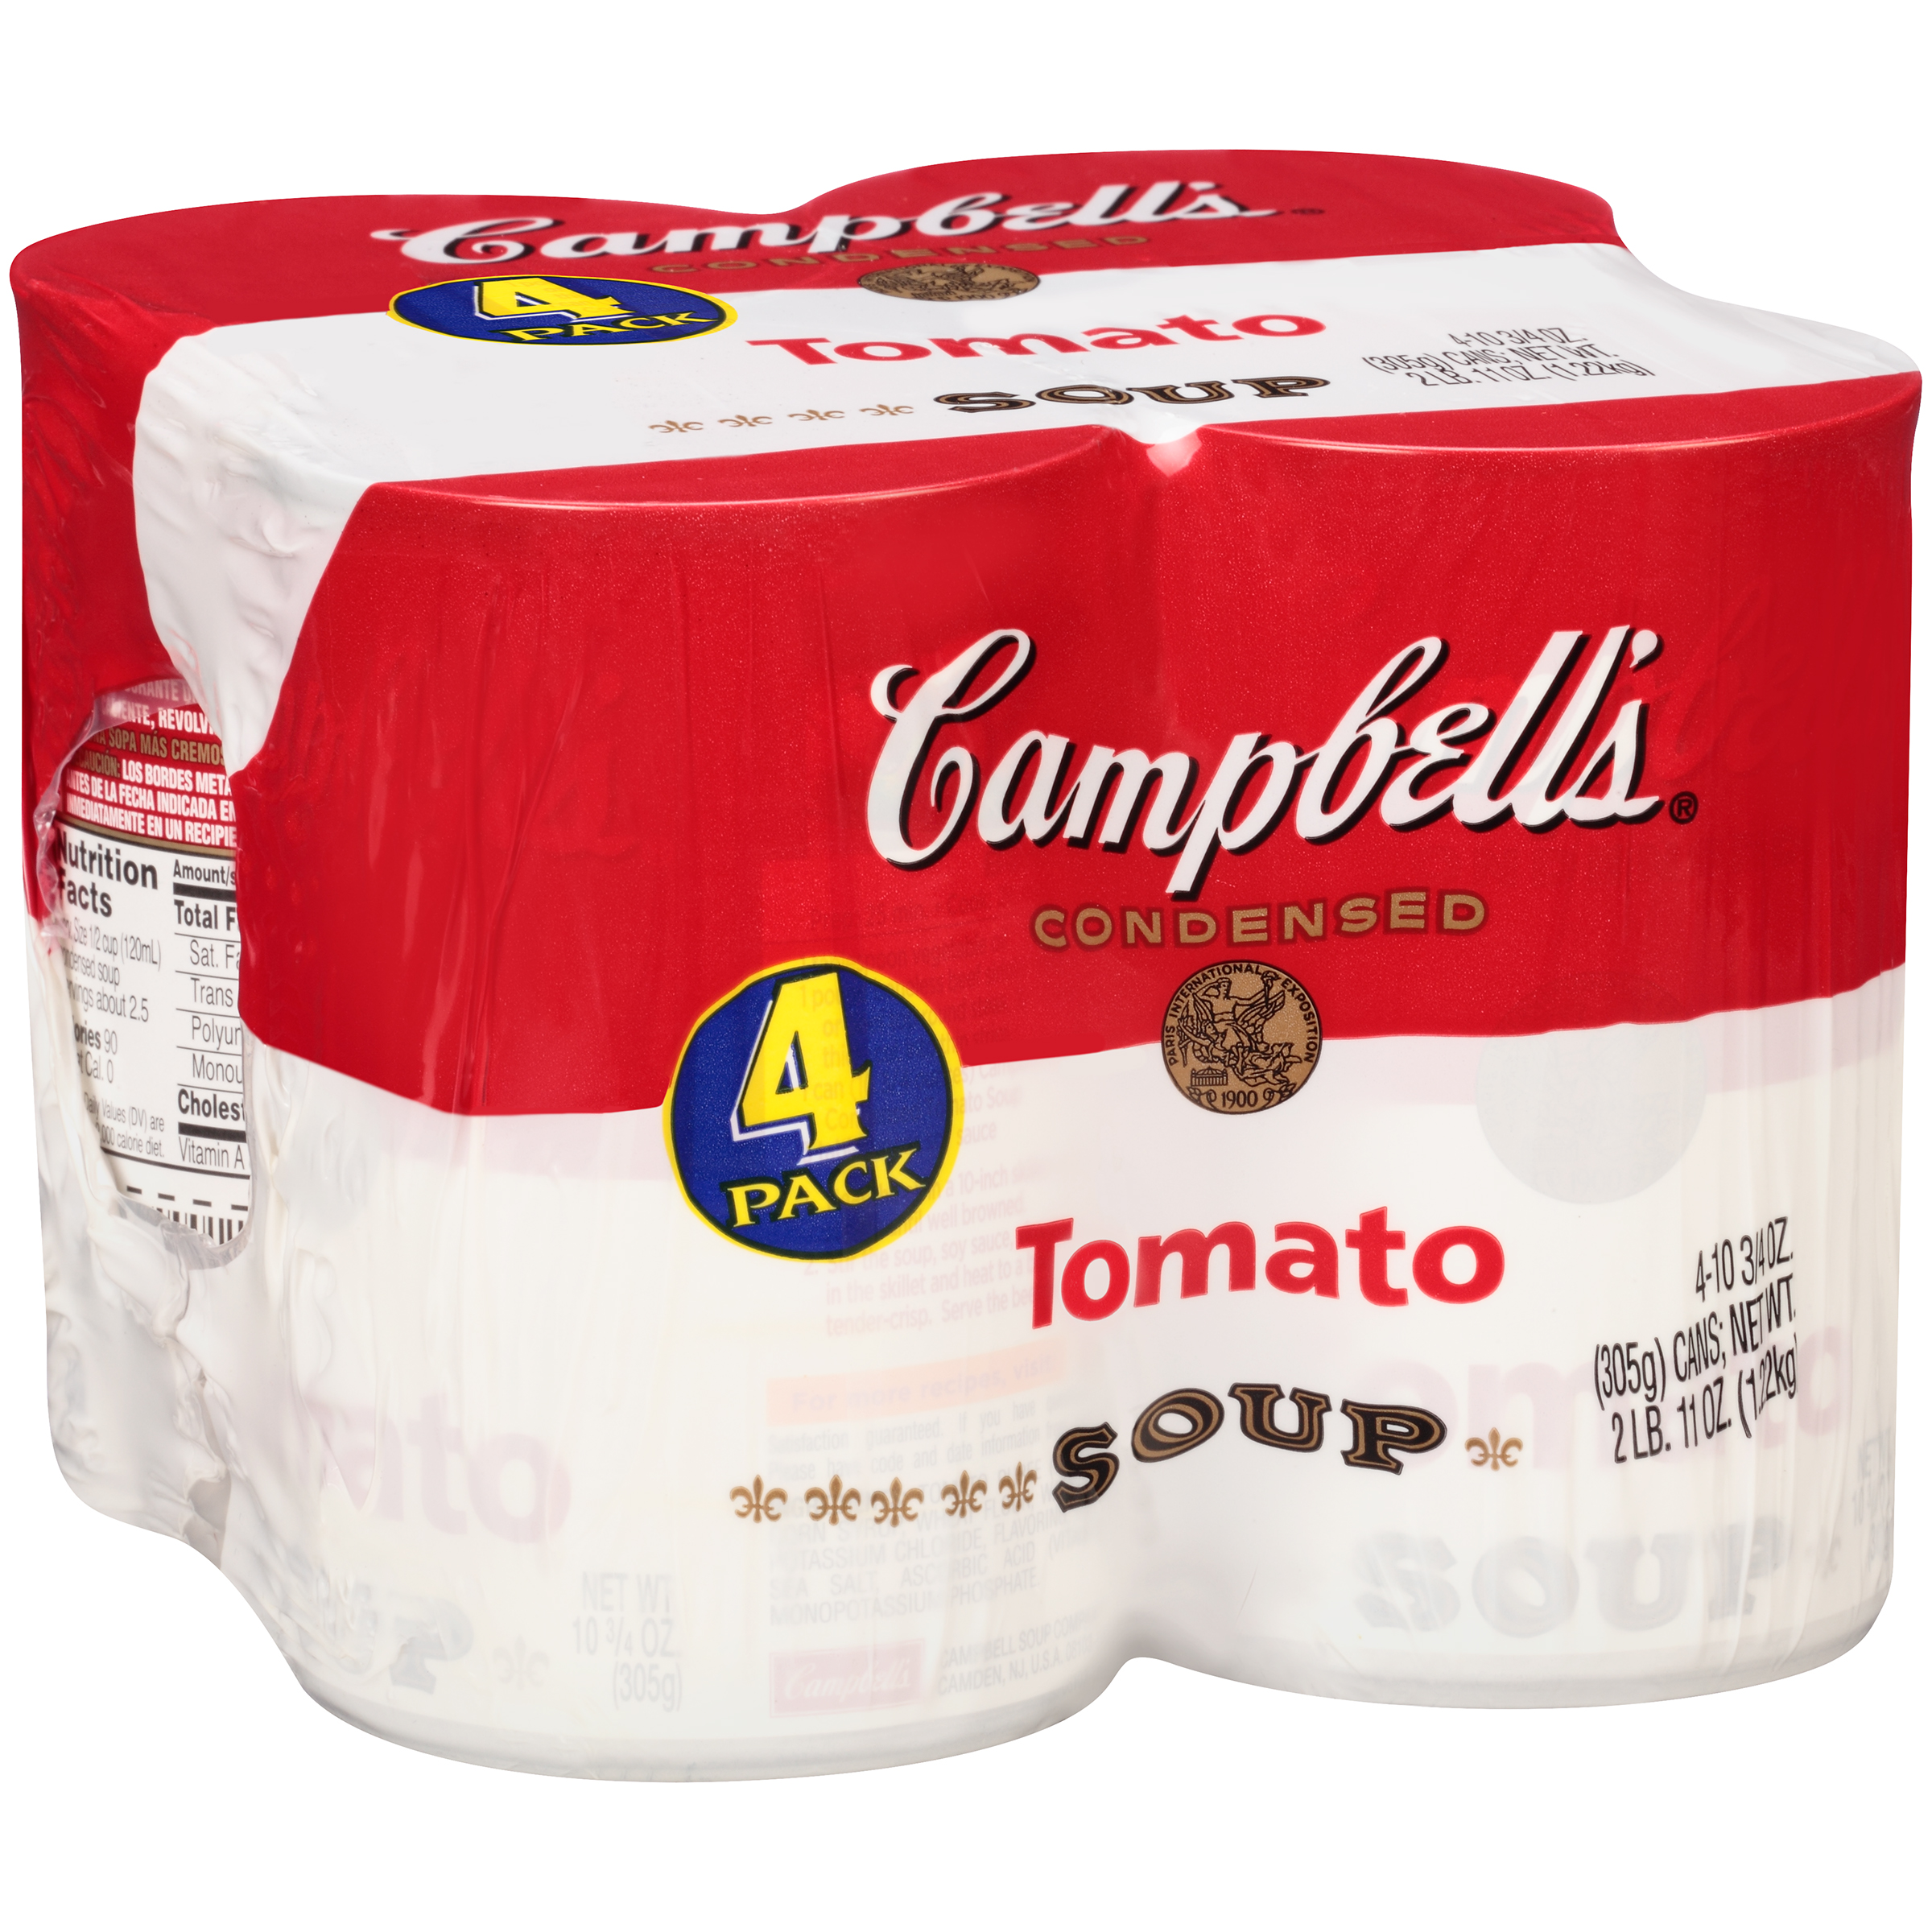 Campbell's Tomato Soup 10.75oz 4 pack